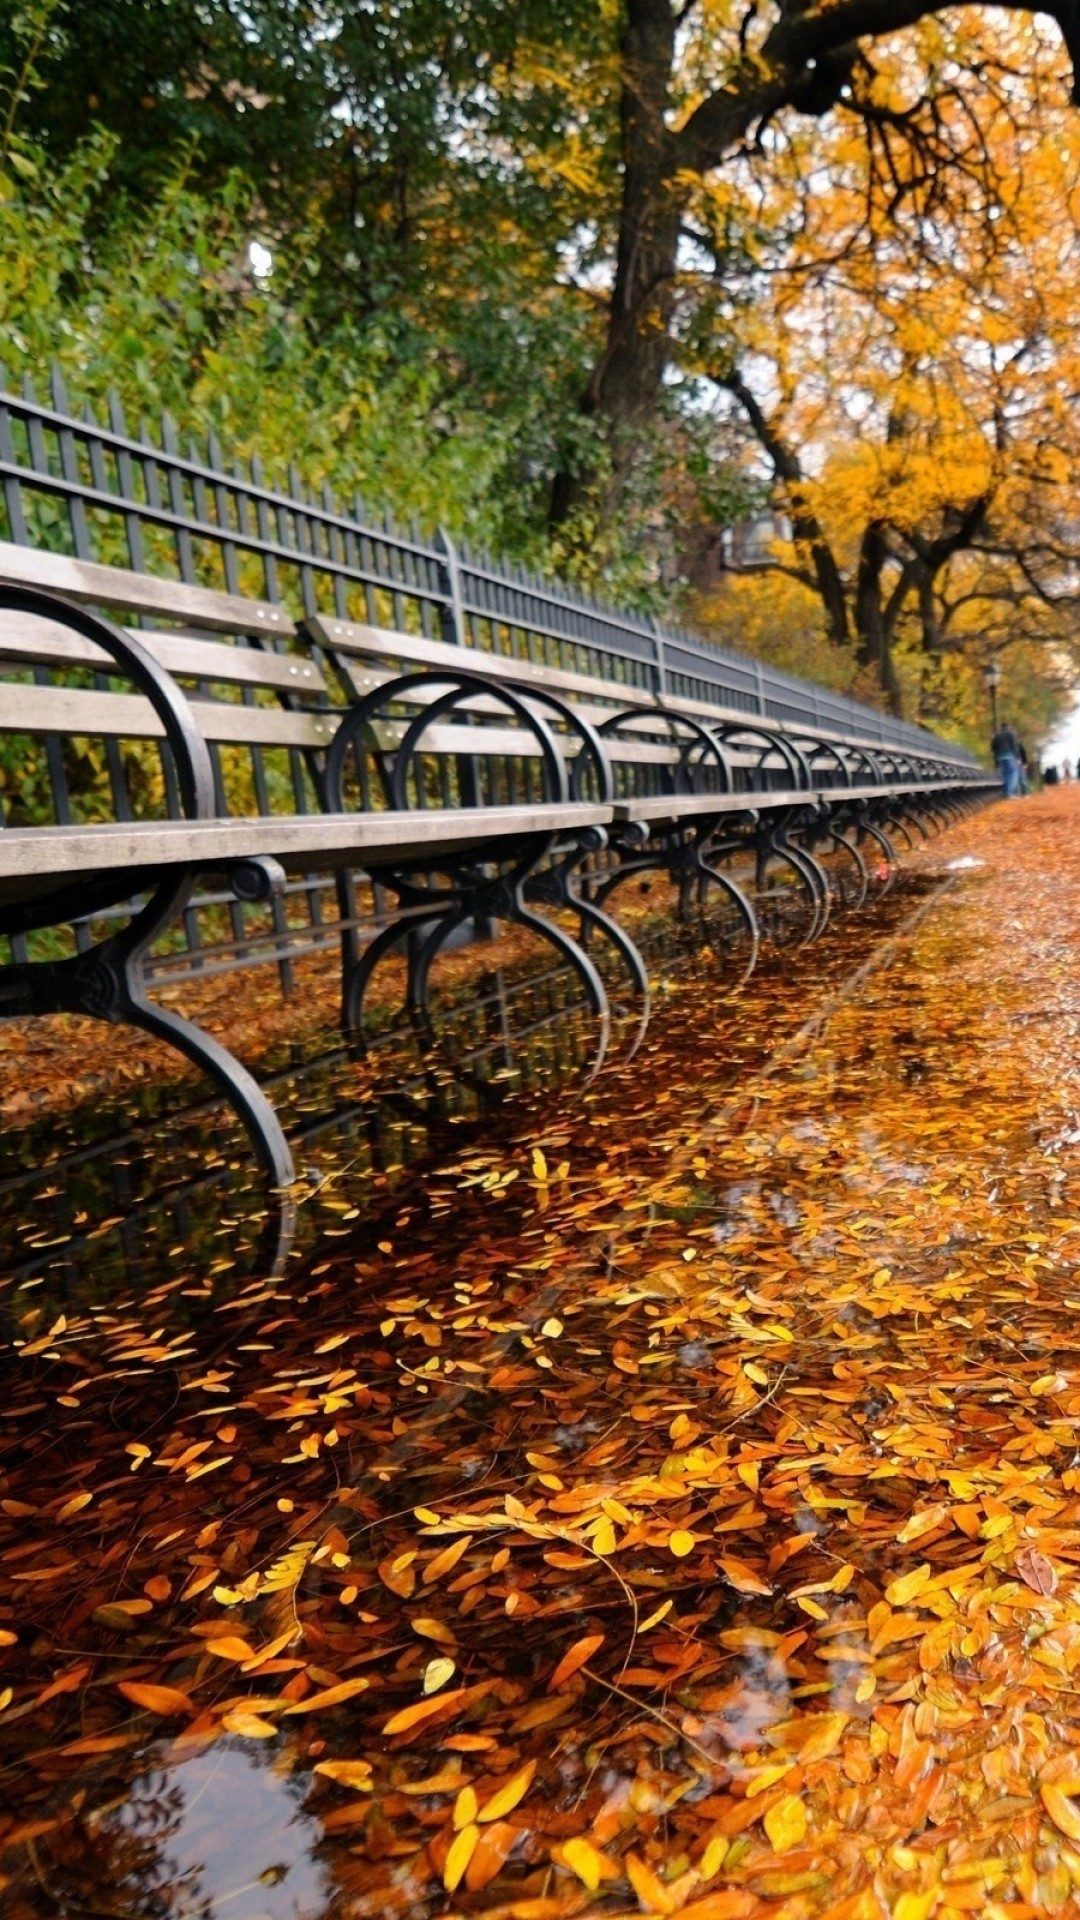 Fall Leaves iPhone 6 Plus preview Fall Leaves Bench iPhone 6 Plus prevew